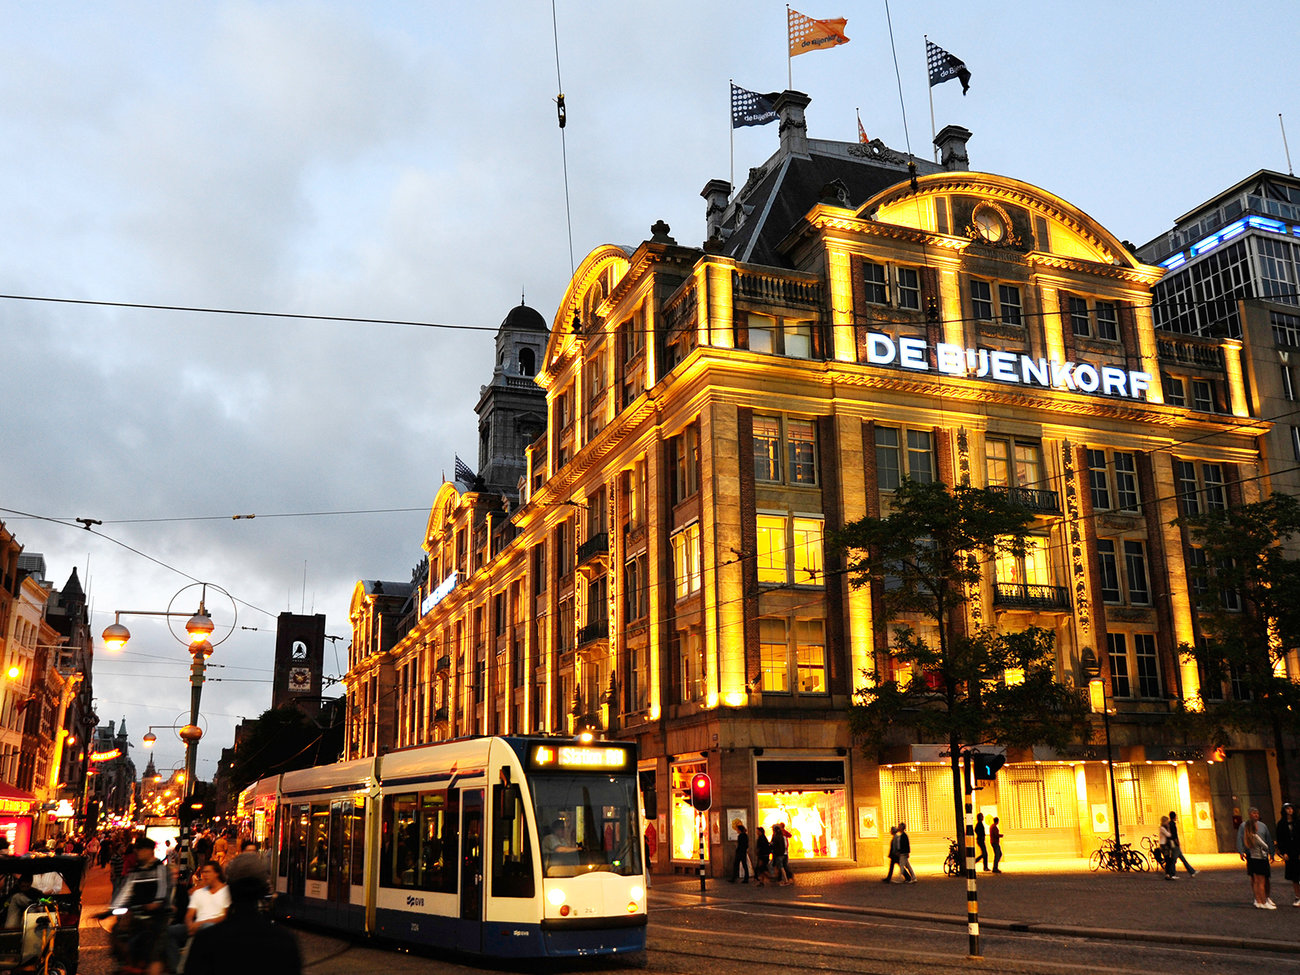 De Bijenkorf Department Store in Amsterdam